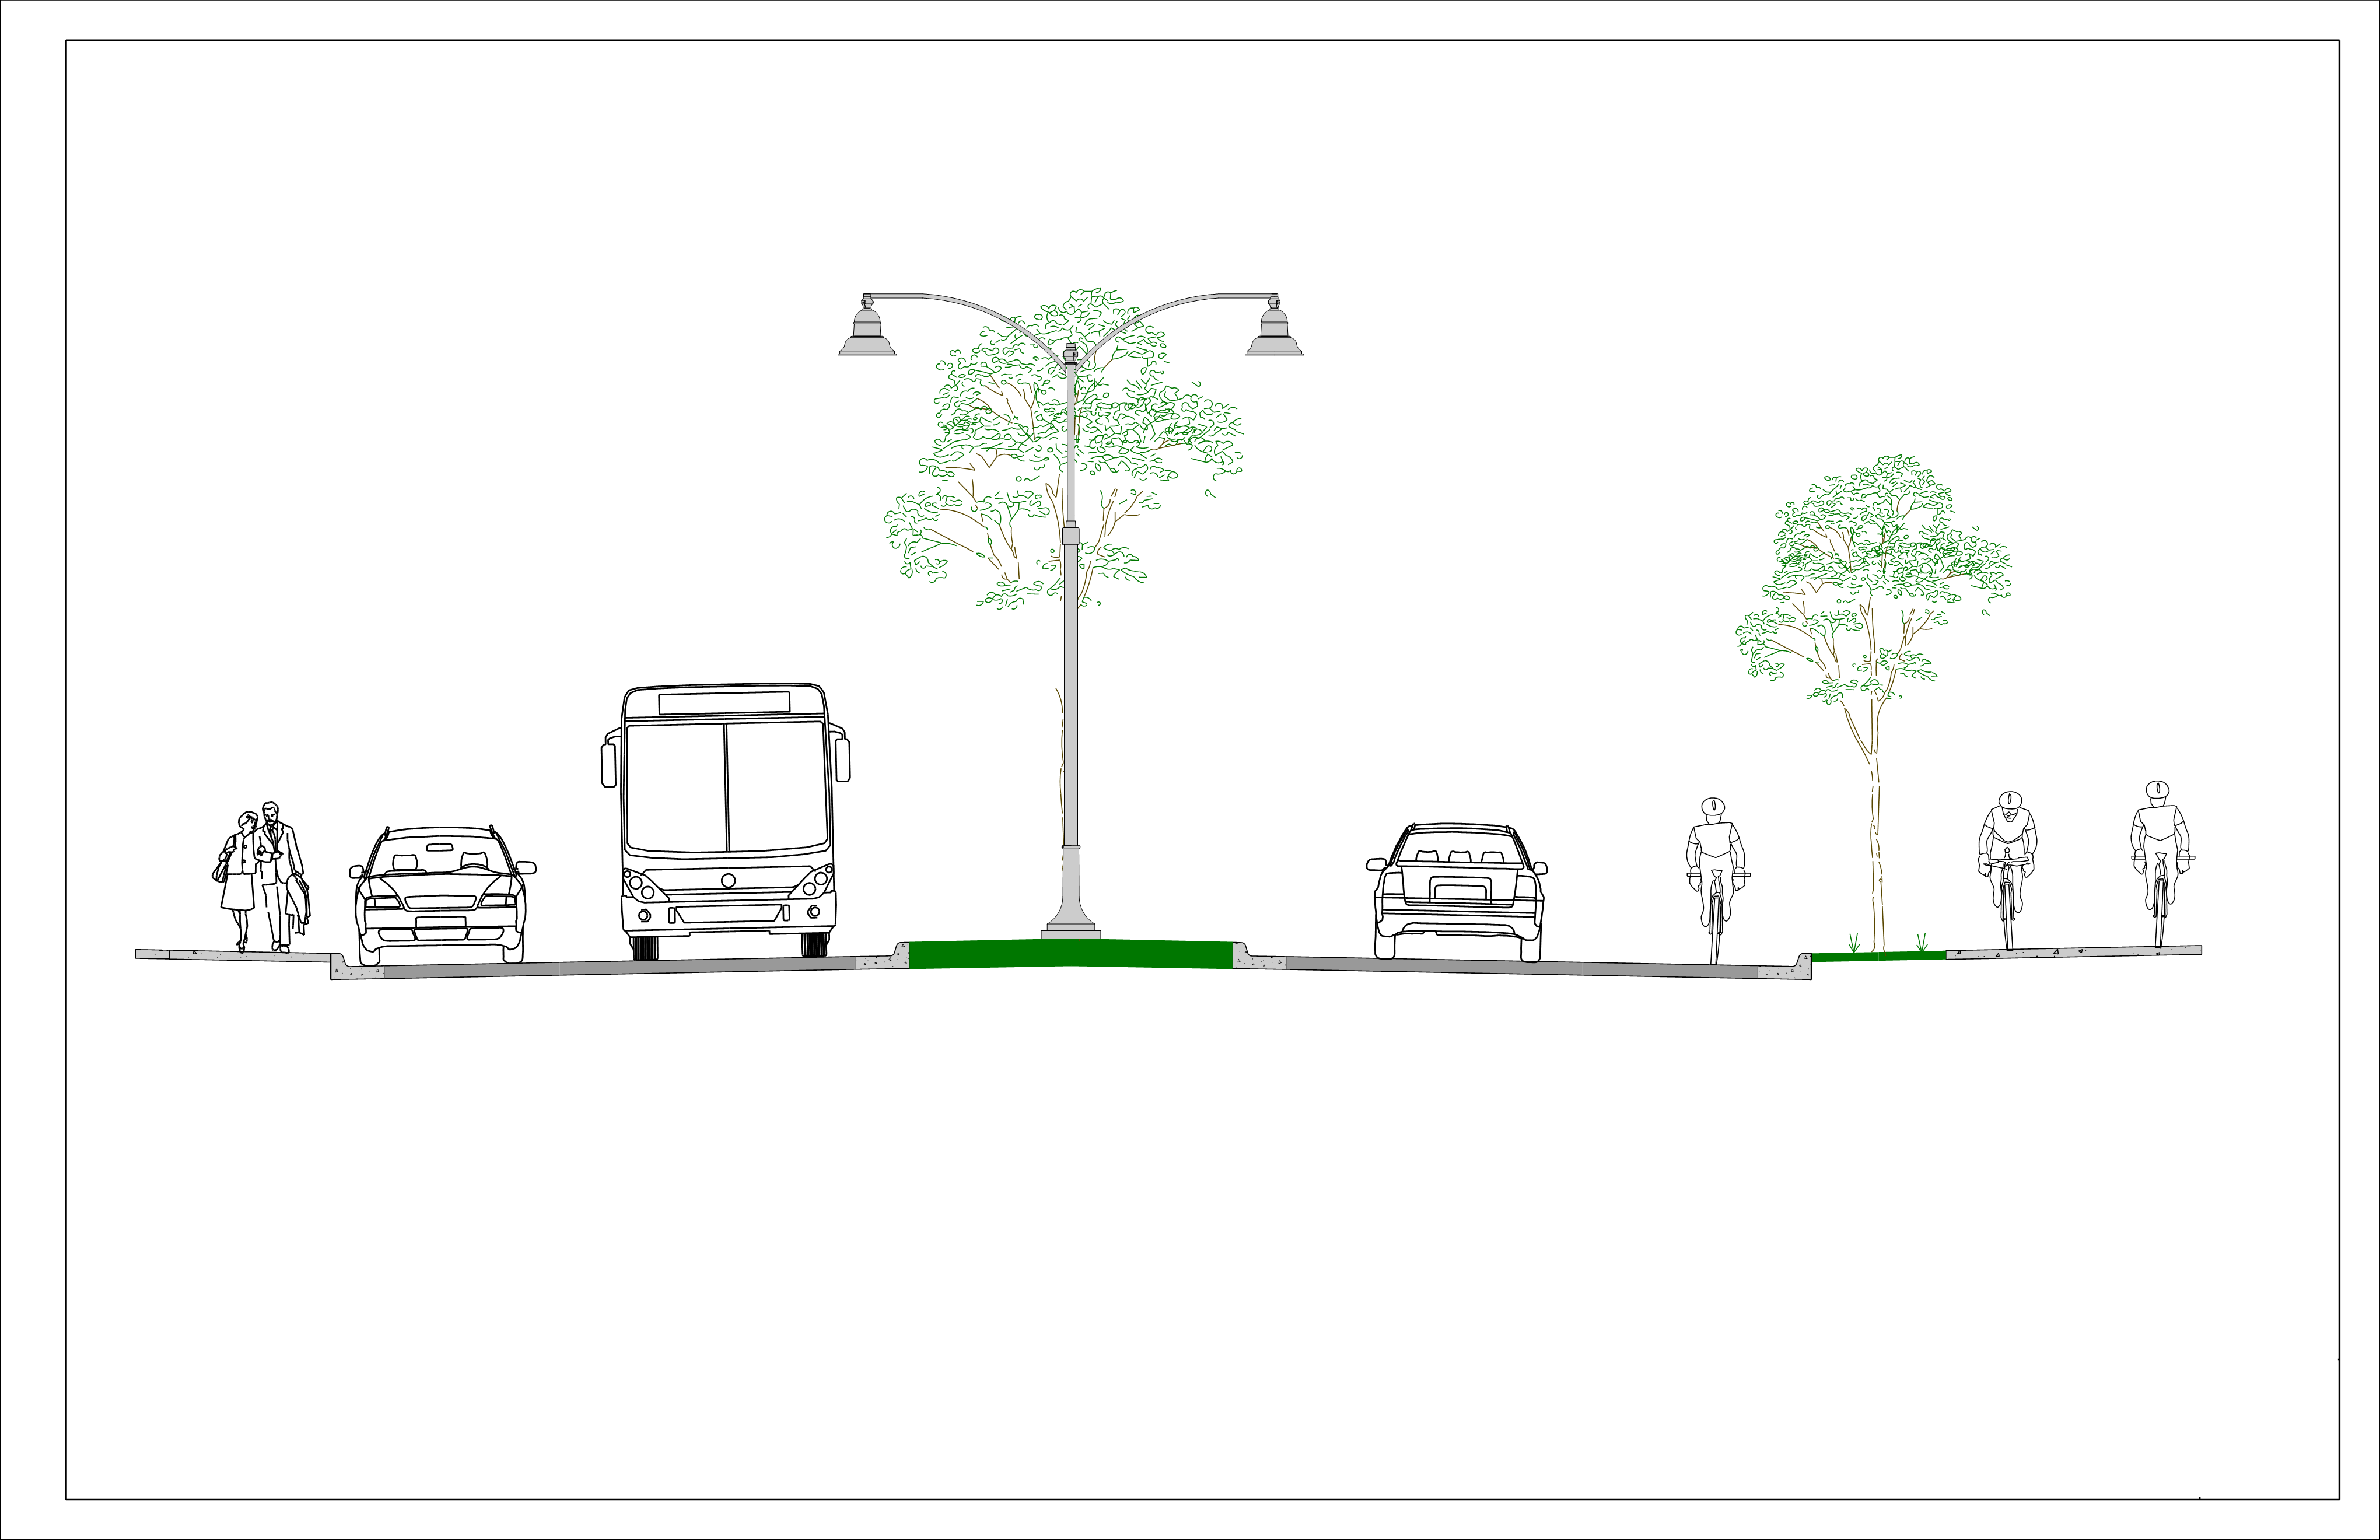 "<span style=""font-size: 14pt;"">Master Street Plans include all transportation elements within the city's street Right-of-Way. Depending on the street, these elements may include: Sidewalks, Bike Lanes, Transit Stops, Traffic Lanes, Parking, and Streetscape.</span>"